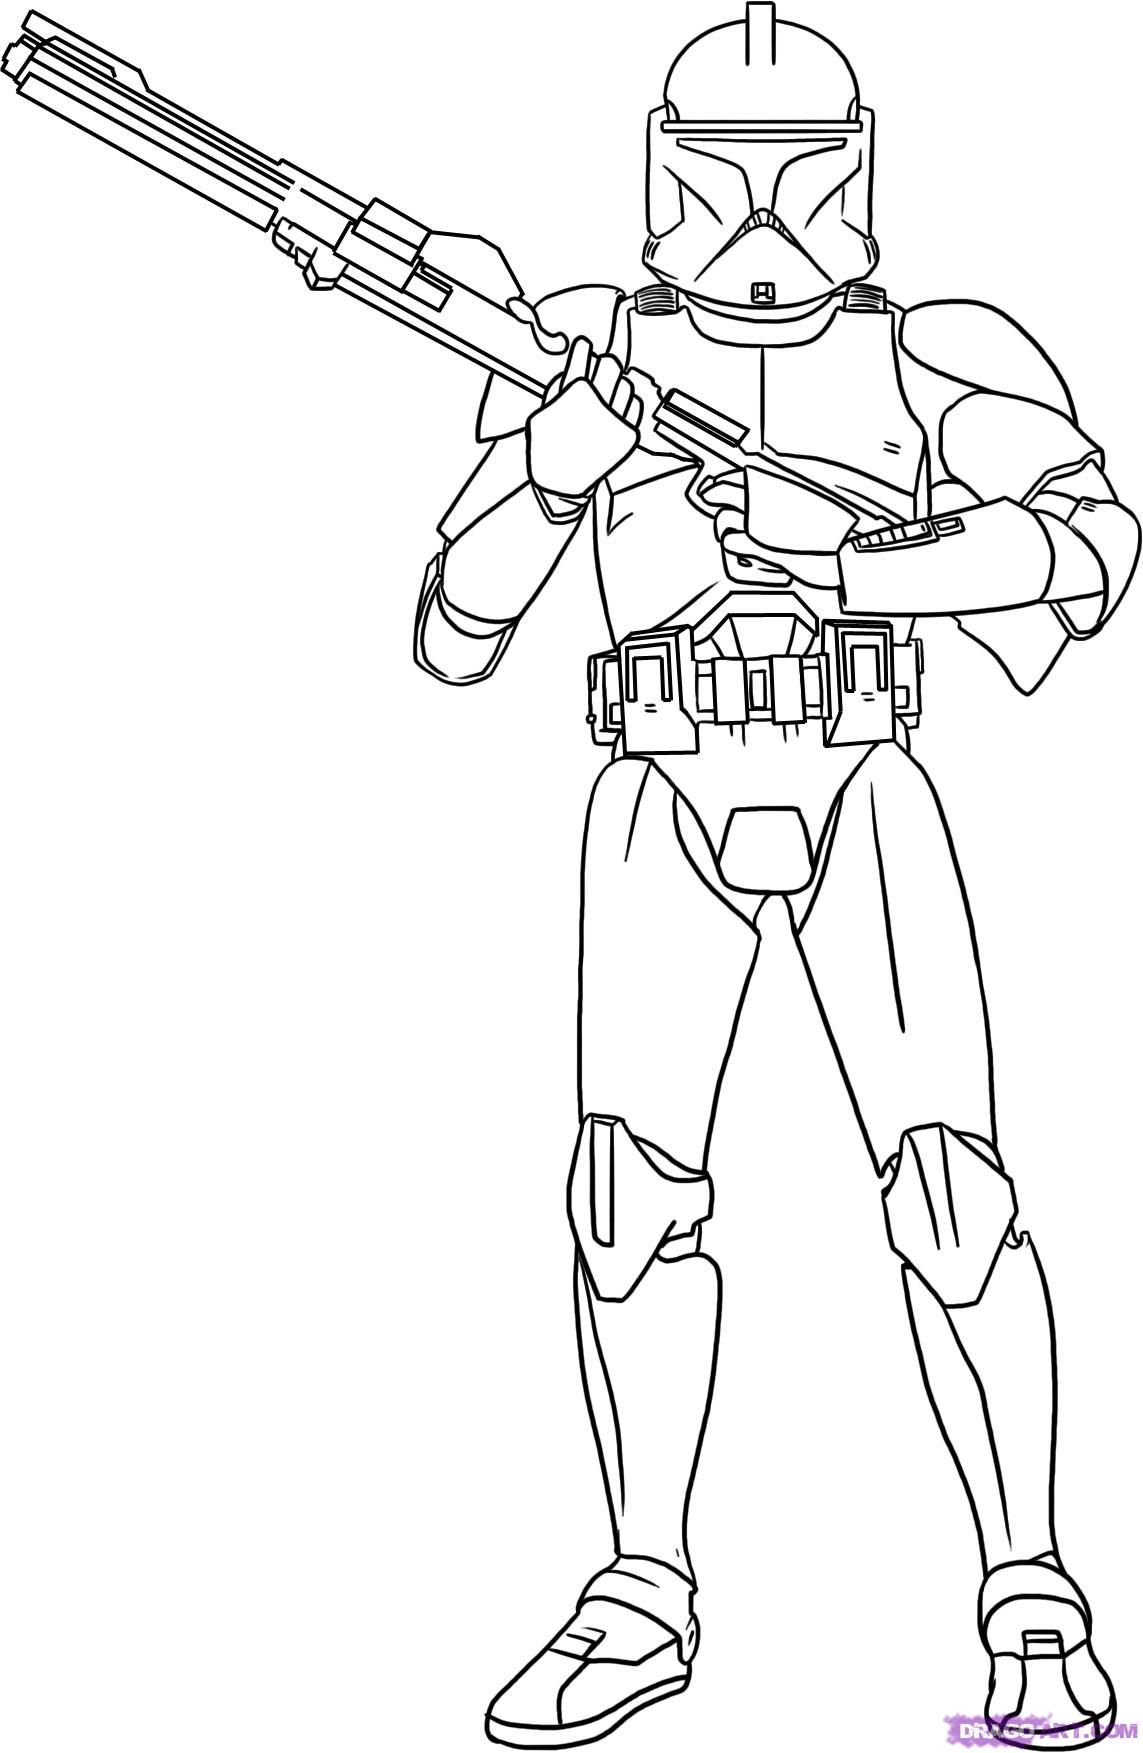 Star Wars Coloring Pages Free Printable Star Wars Coloring Pages Star Wars Drawings Star Wars Coloring Book Star Wars Colors